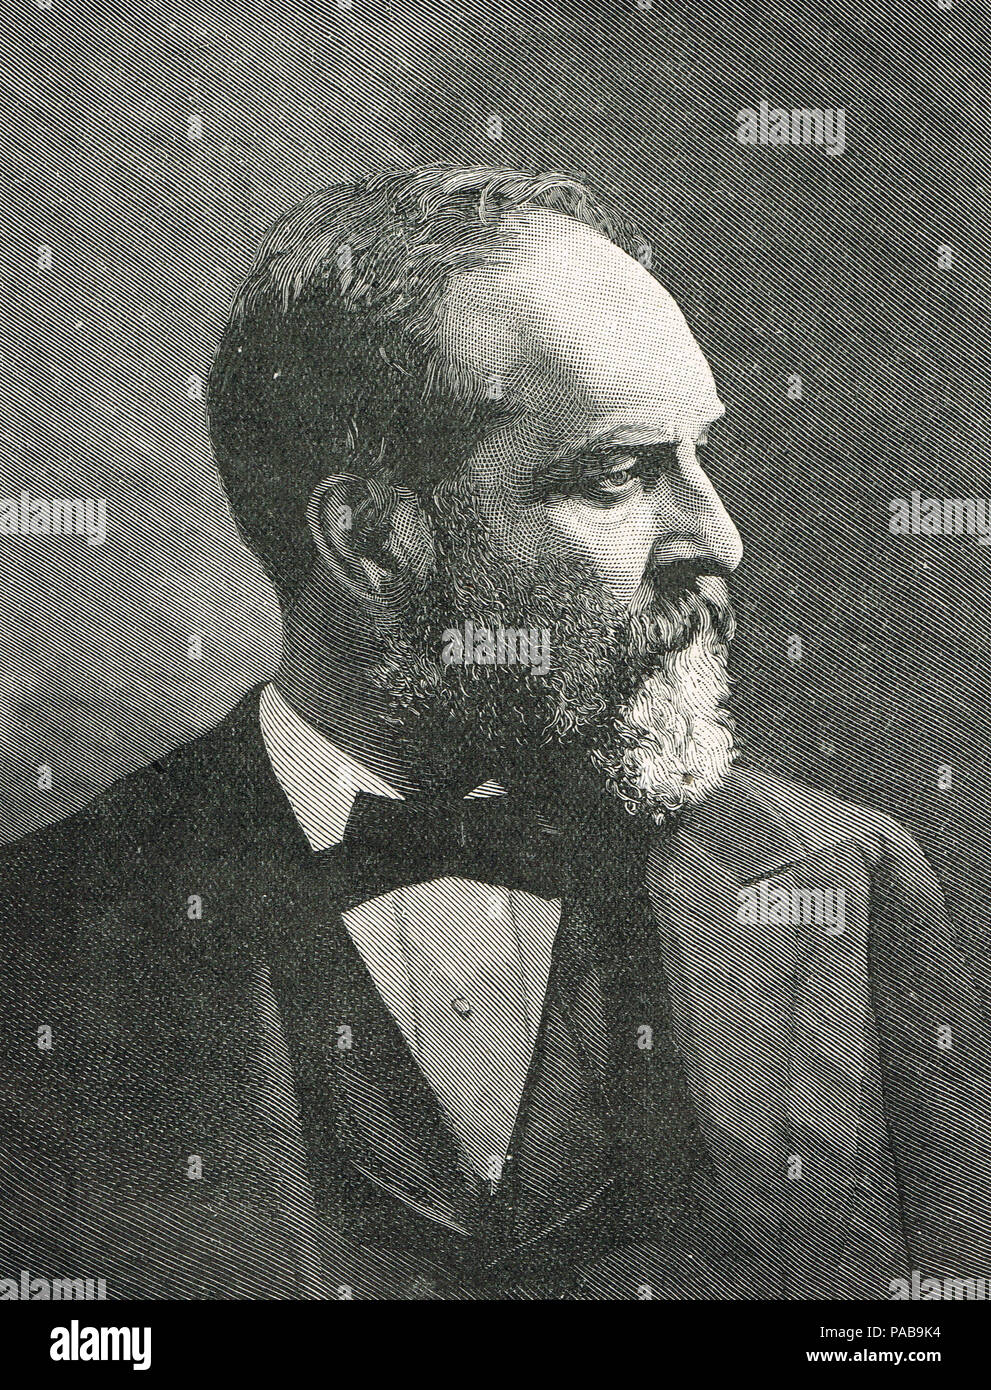 President James Abram Garfield, Circa 1870's, 20th President of the United States, assassinated On July 2, 1881 Stock Photo